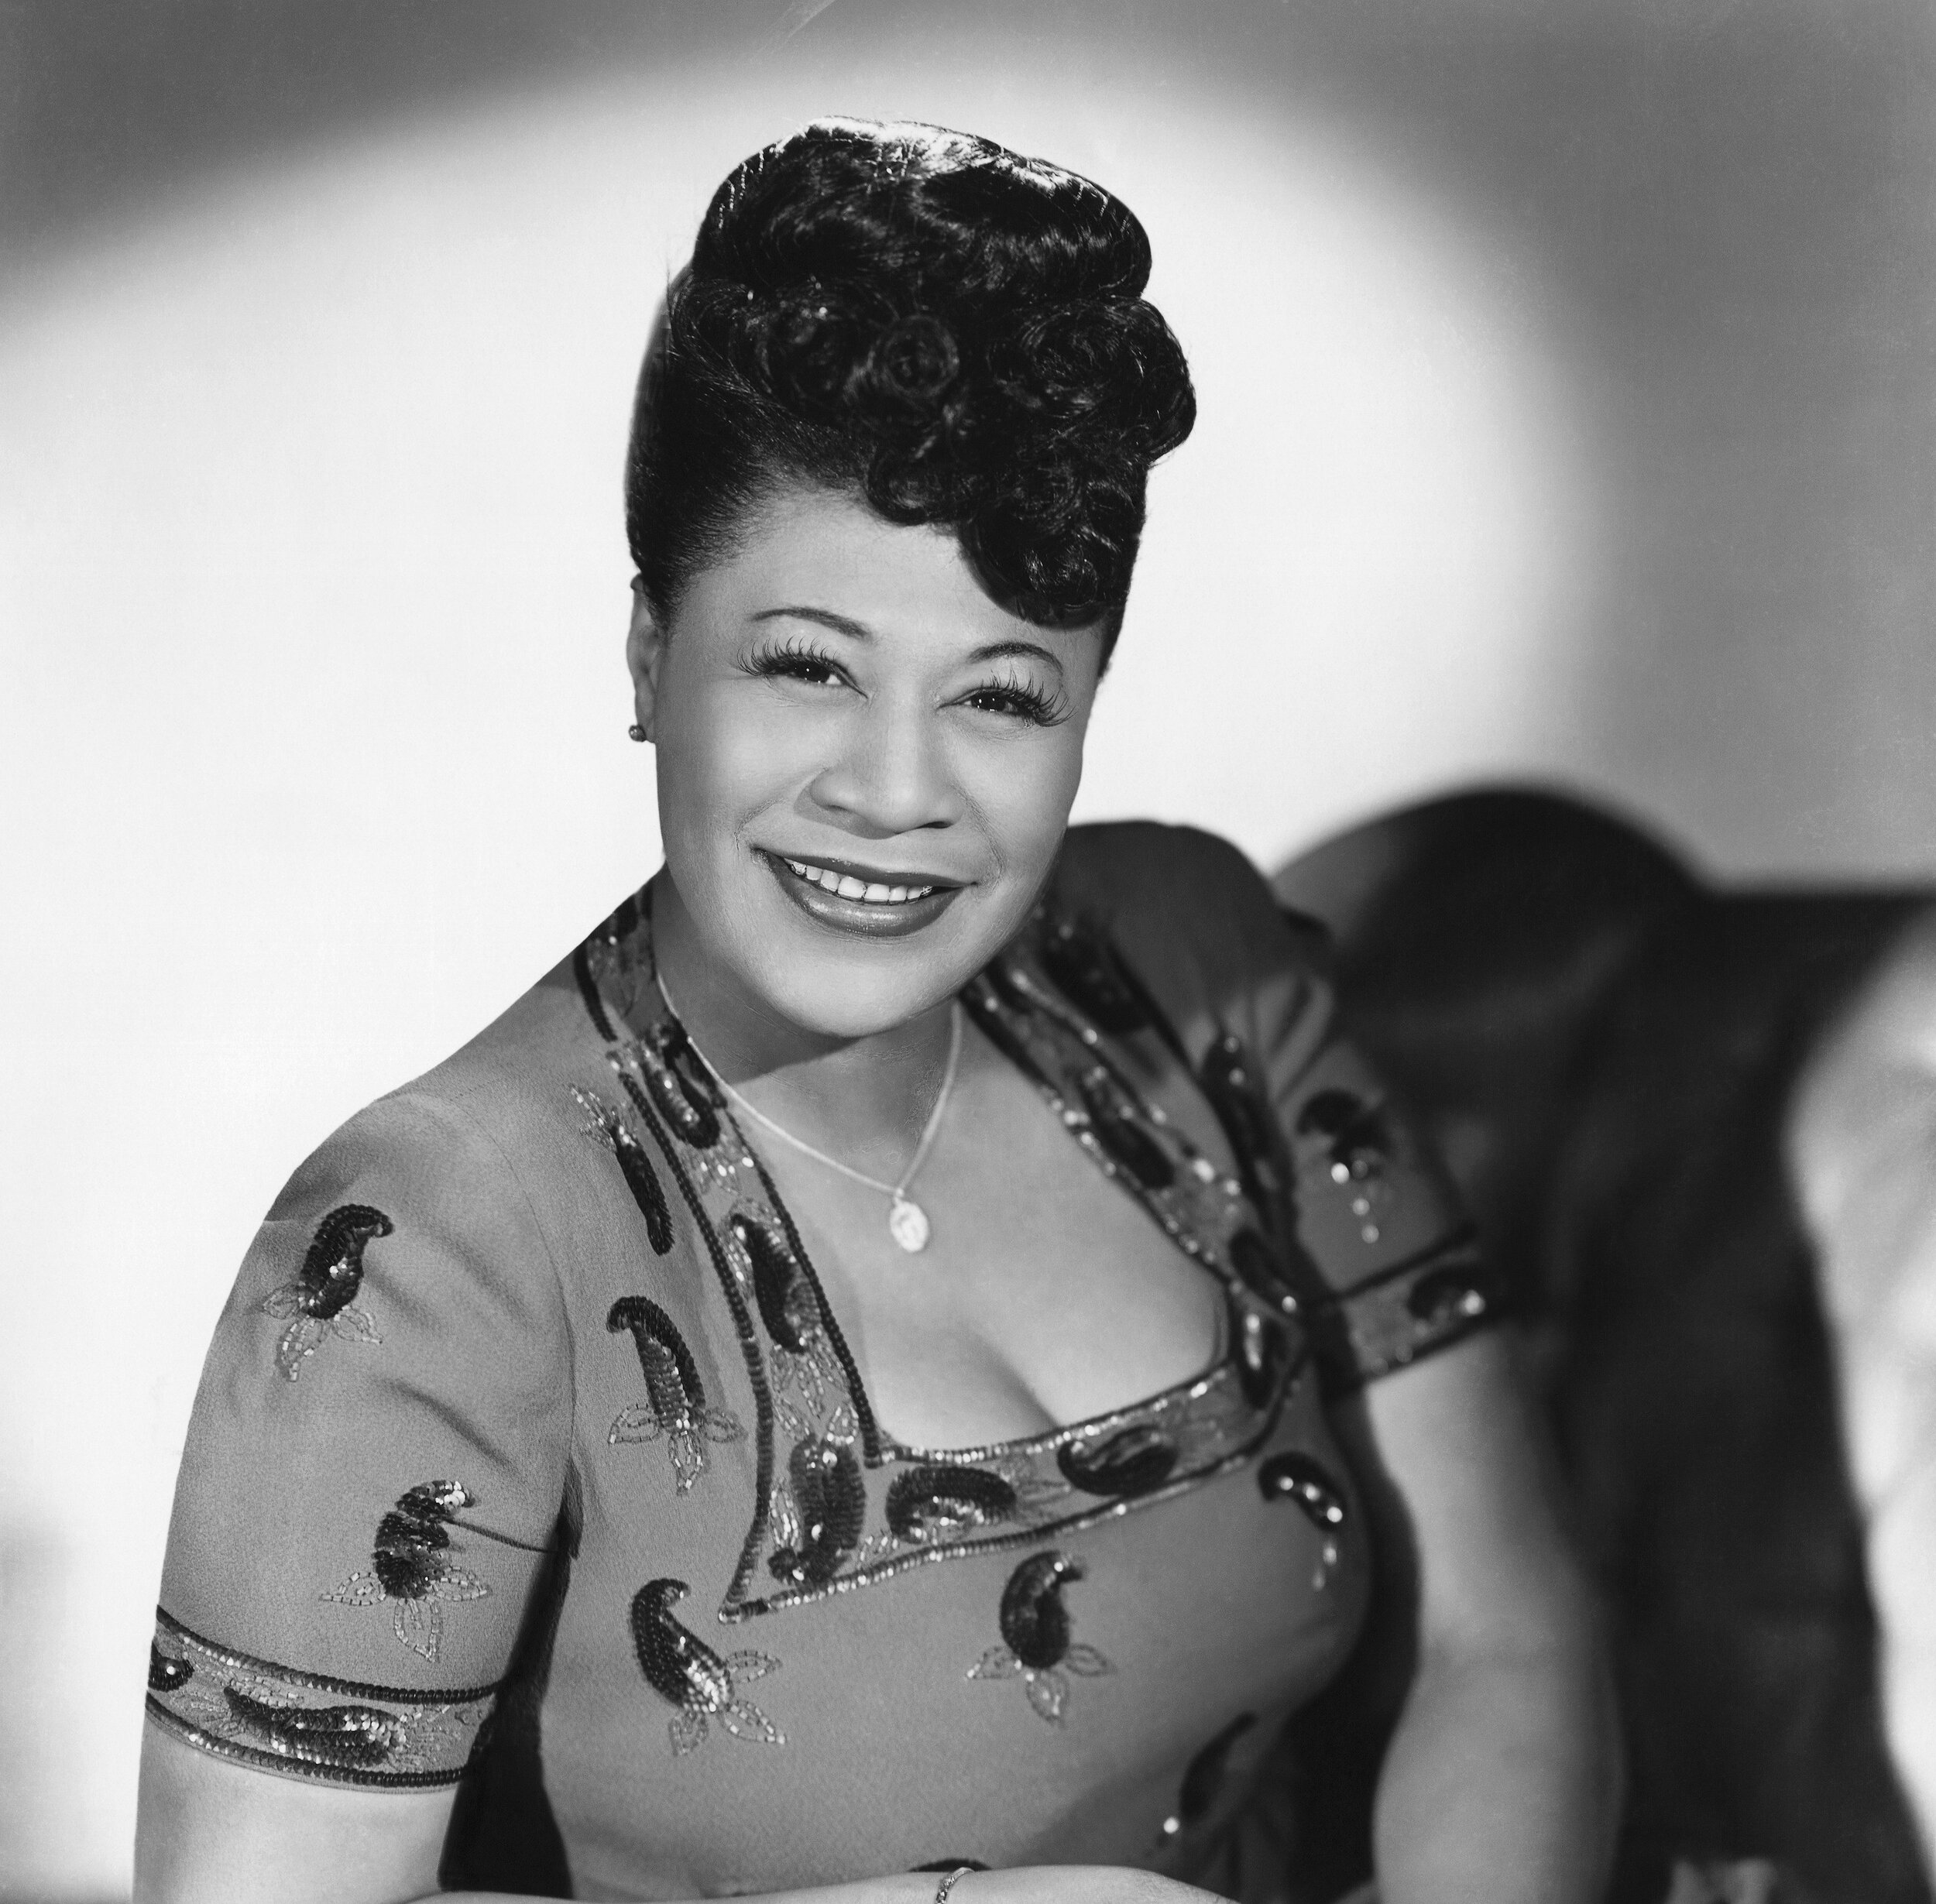 Ella Fitzgerald (1917 – 1996). If you're not familiar with this magnificent woman's music you've been missing out. Look her up and fill your ears and heart with song.